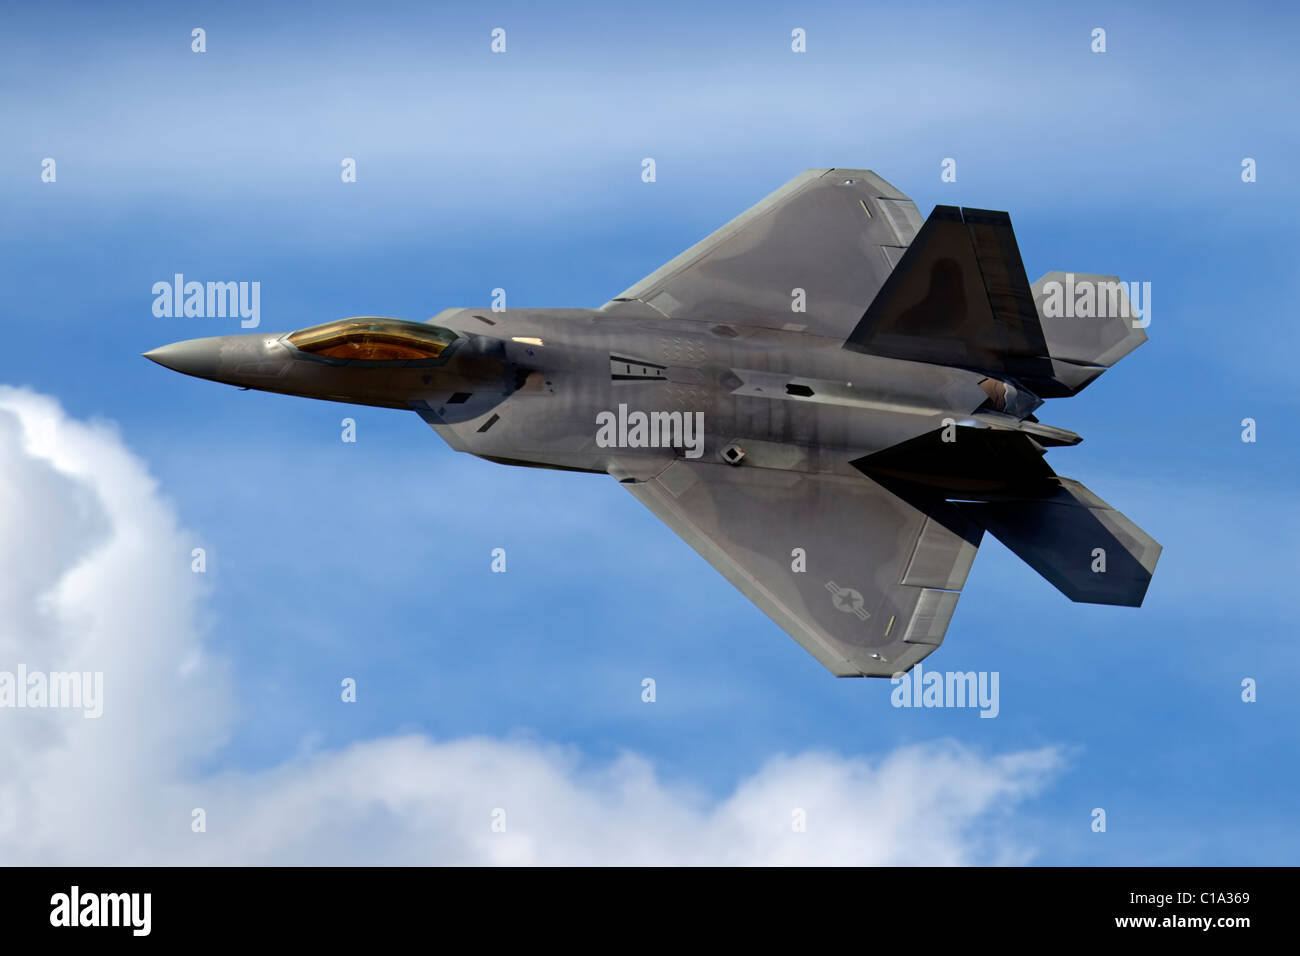 Lockheed Martin F22A RAPTOR aeroplane of the USAF Air Combat Command Wing, Raptor Demonstration Team - Stock Image